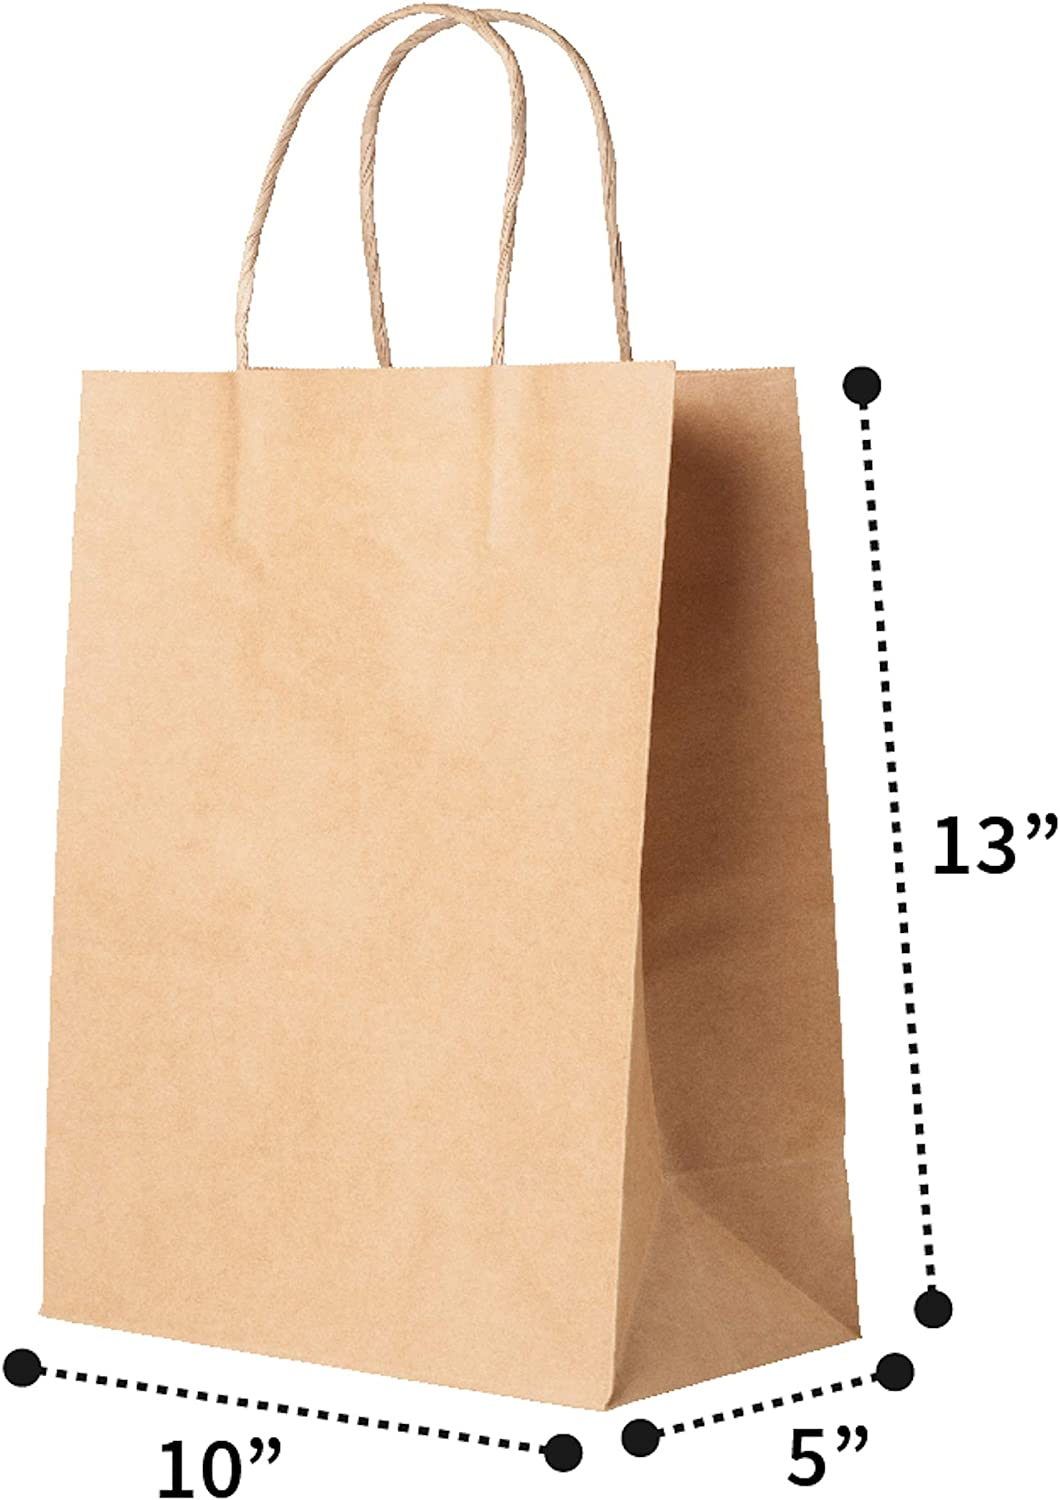 10x5x13 Recycled Kraft Paper Bags with Handles 100 pcs, Brown| Great for Shopping, Retail Packaging, Food Service, Party, Craft, Wedding Gifts, Goody Bag and More!